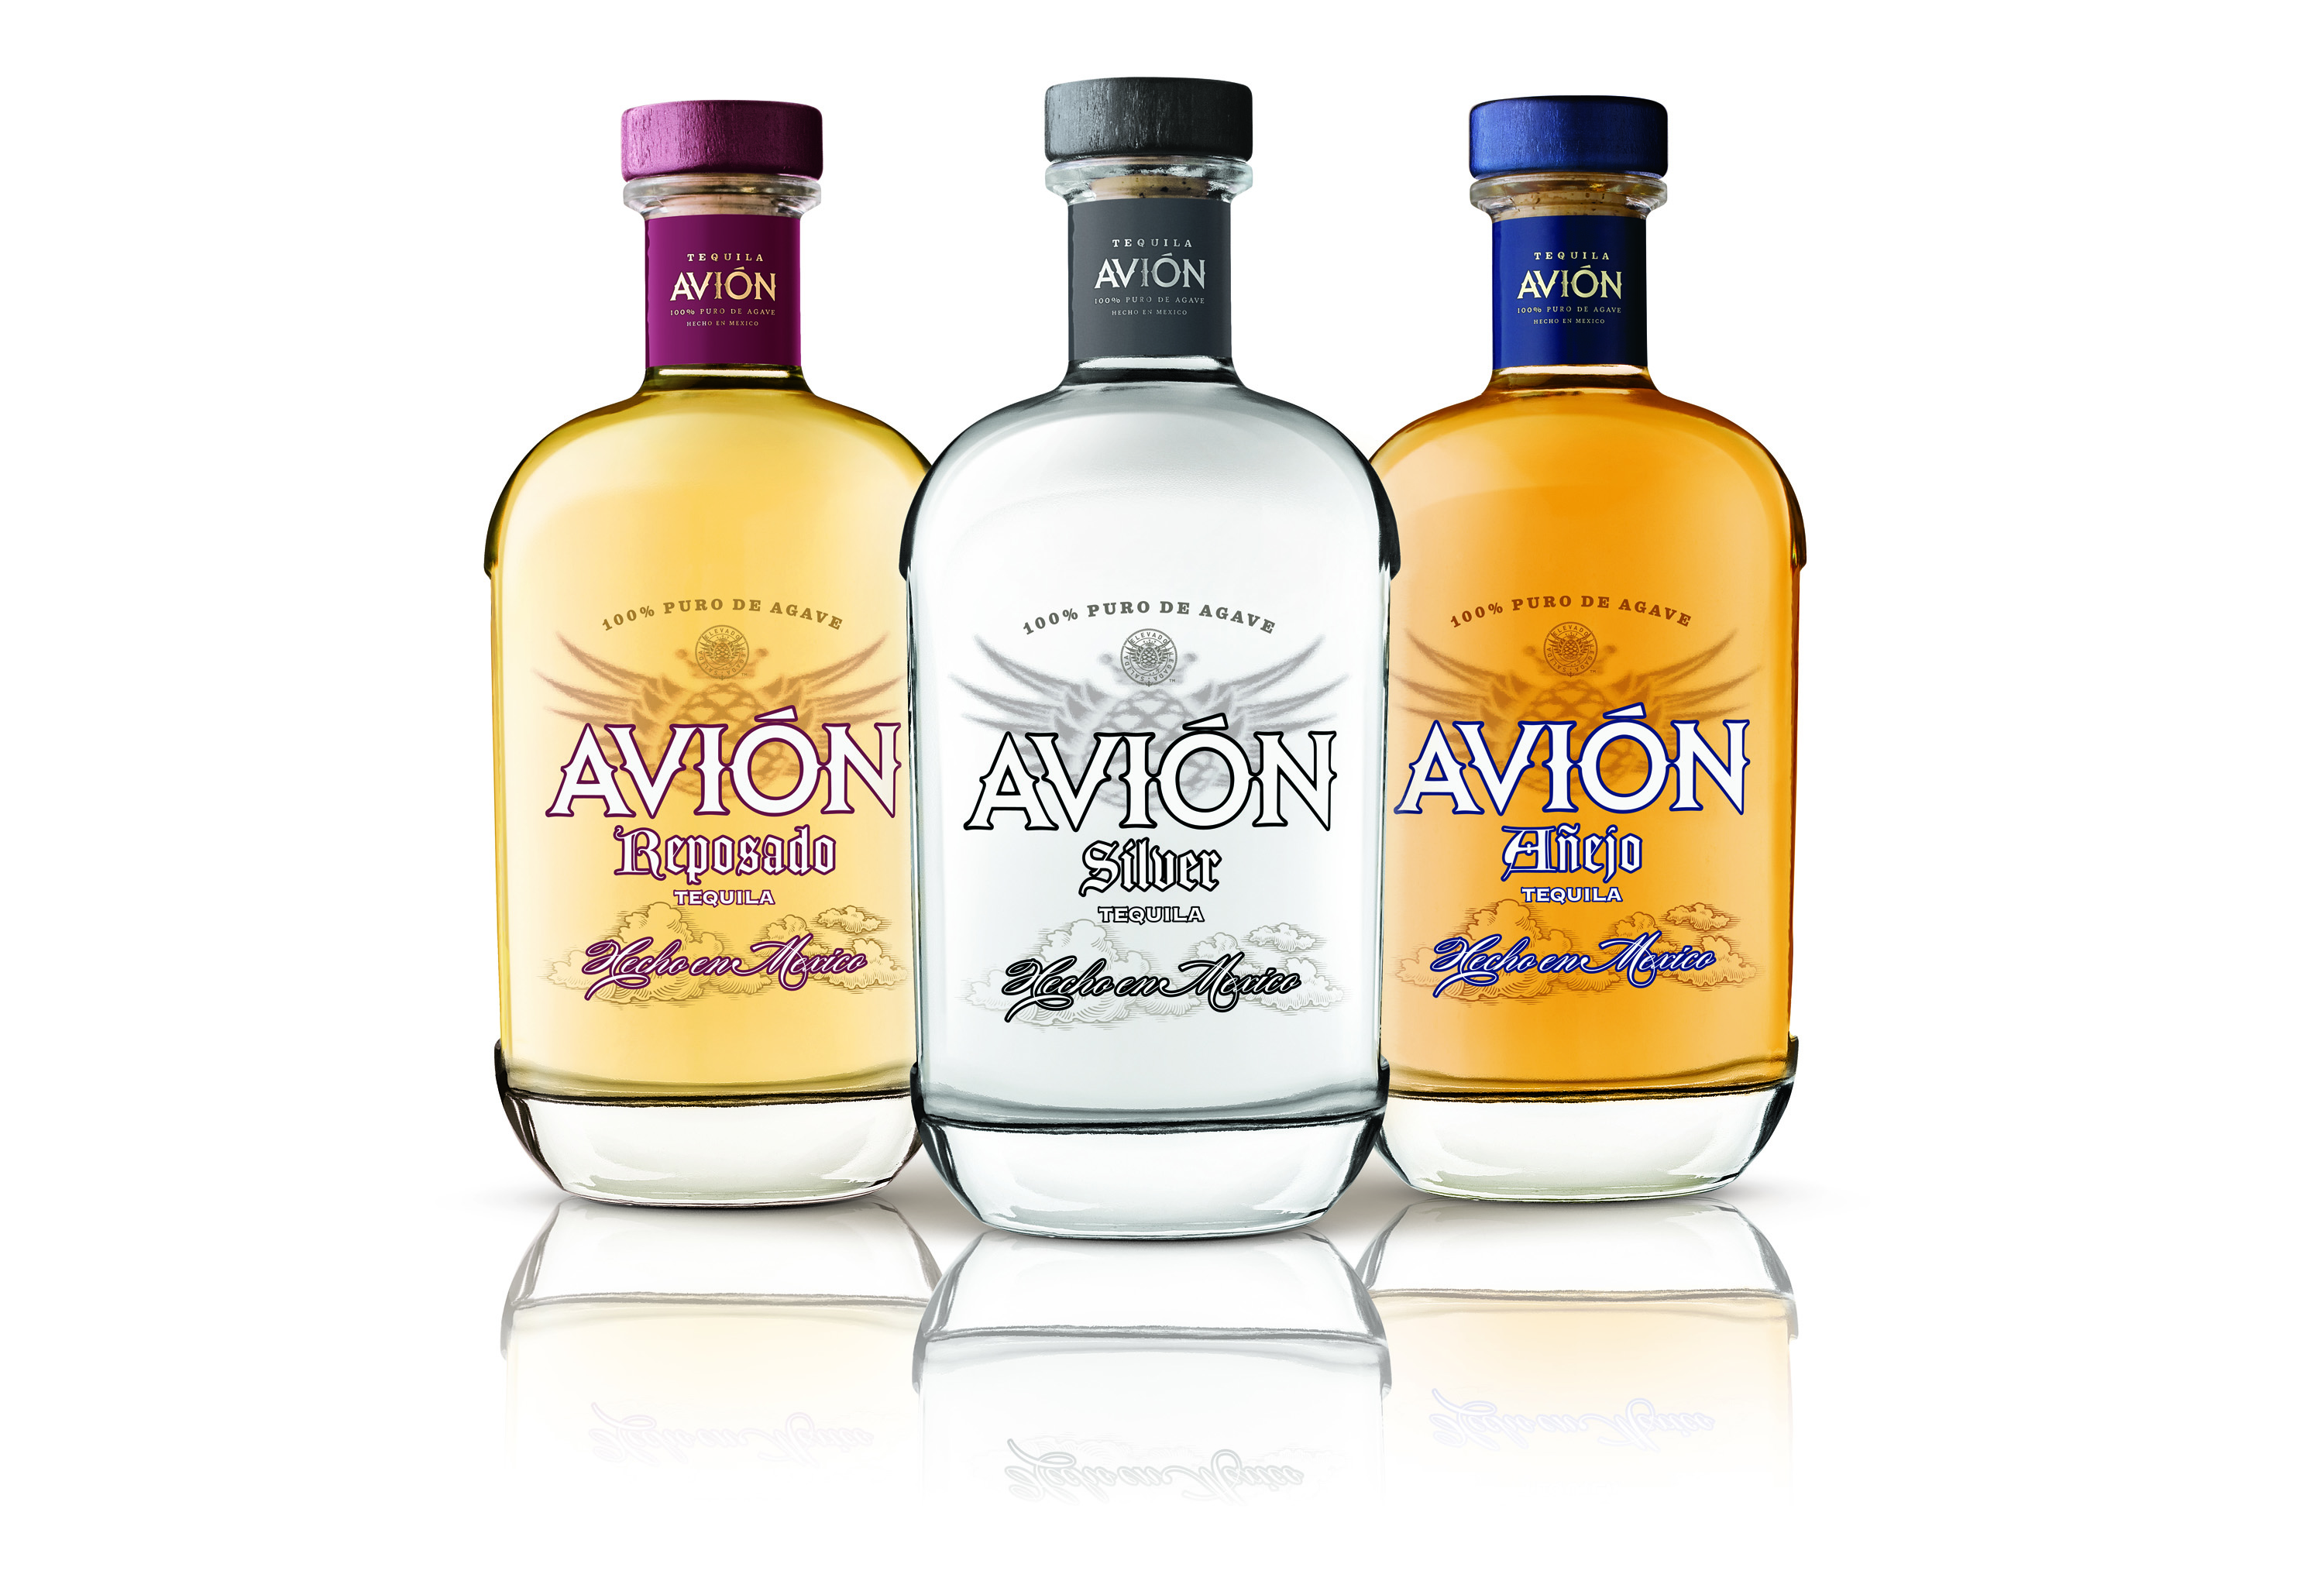 tequila avion review